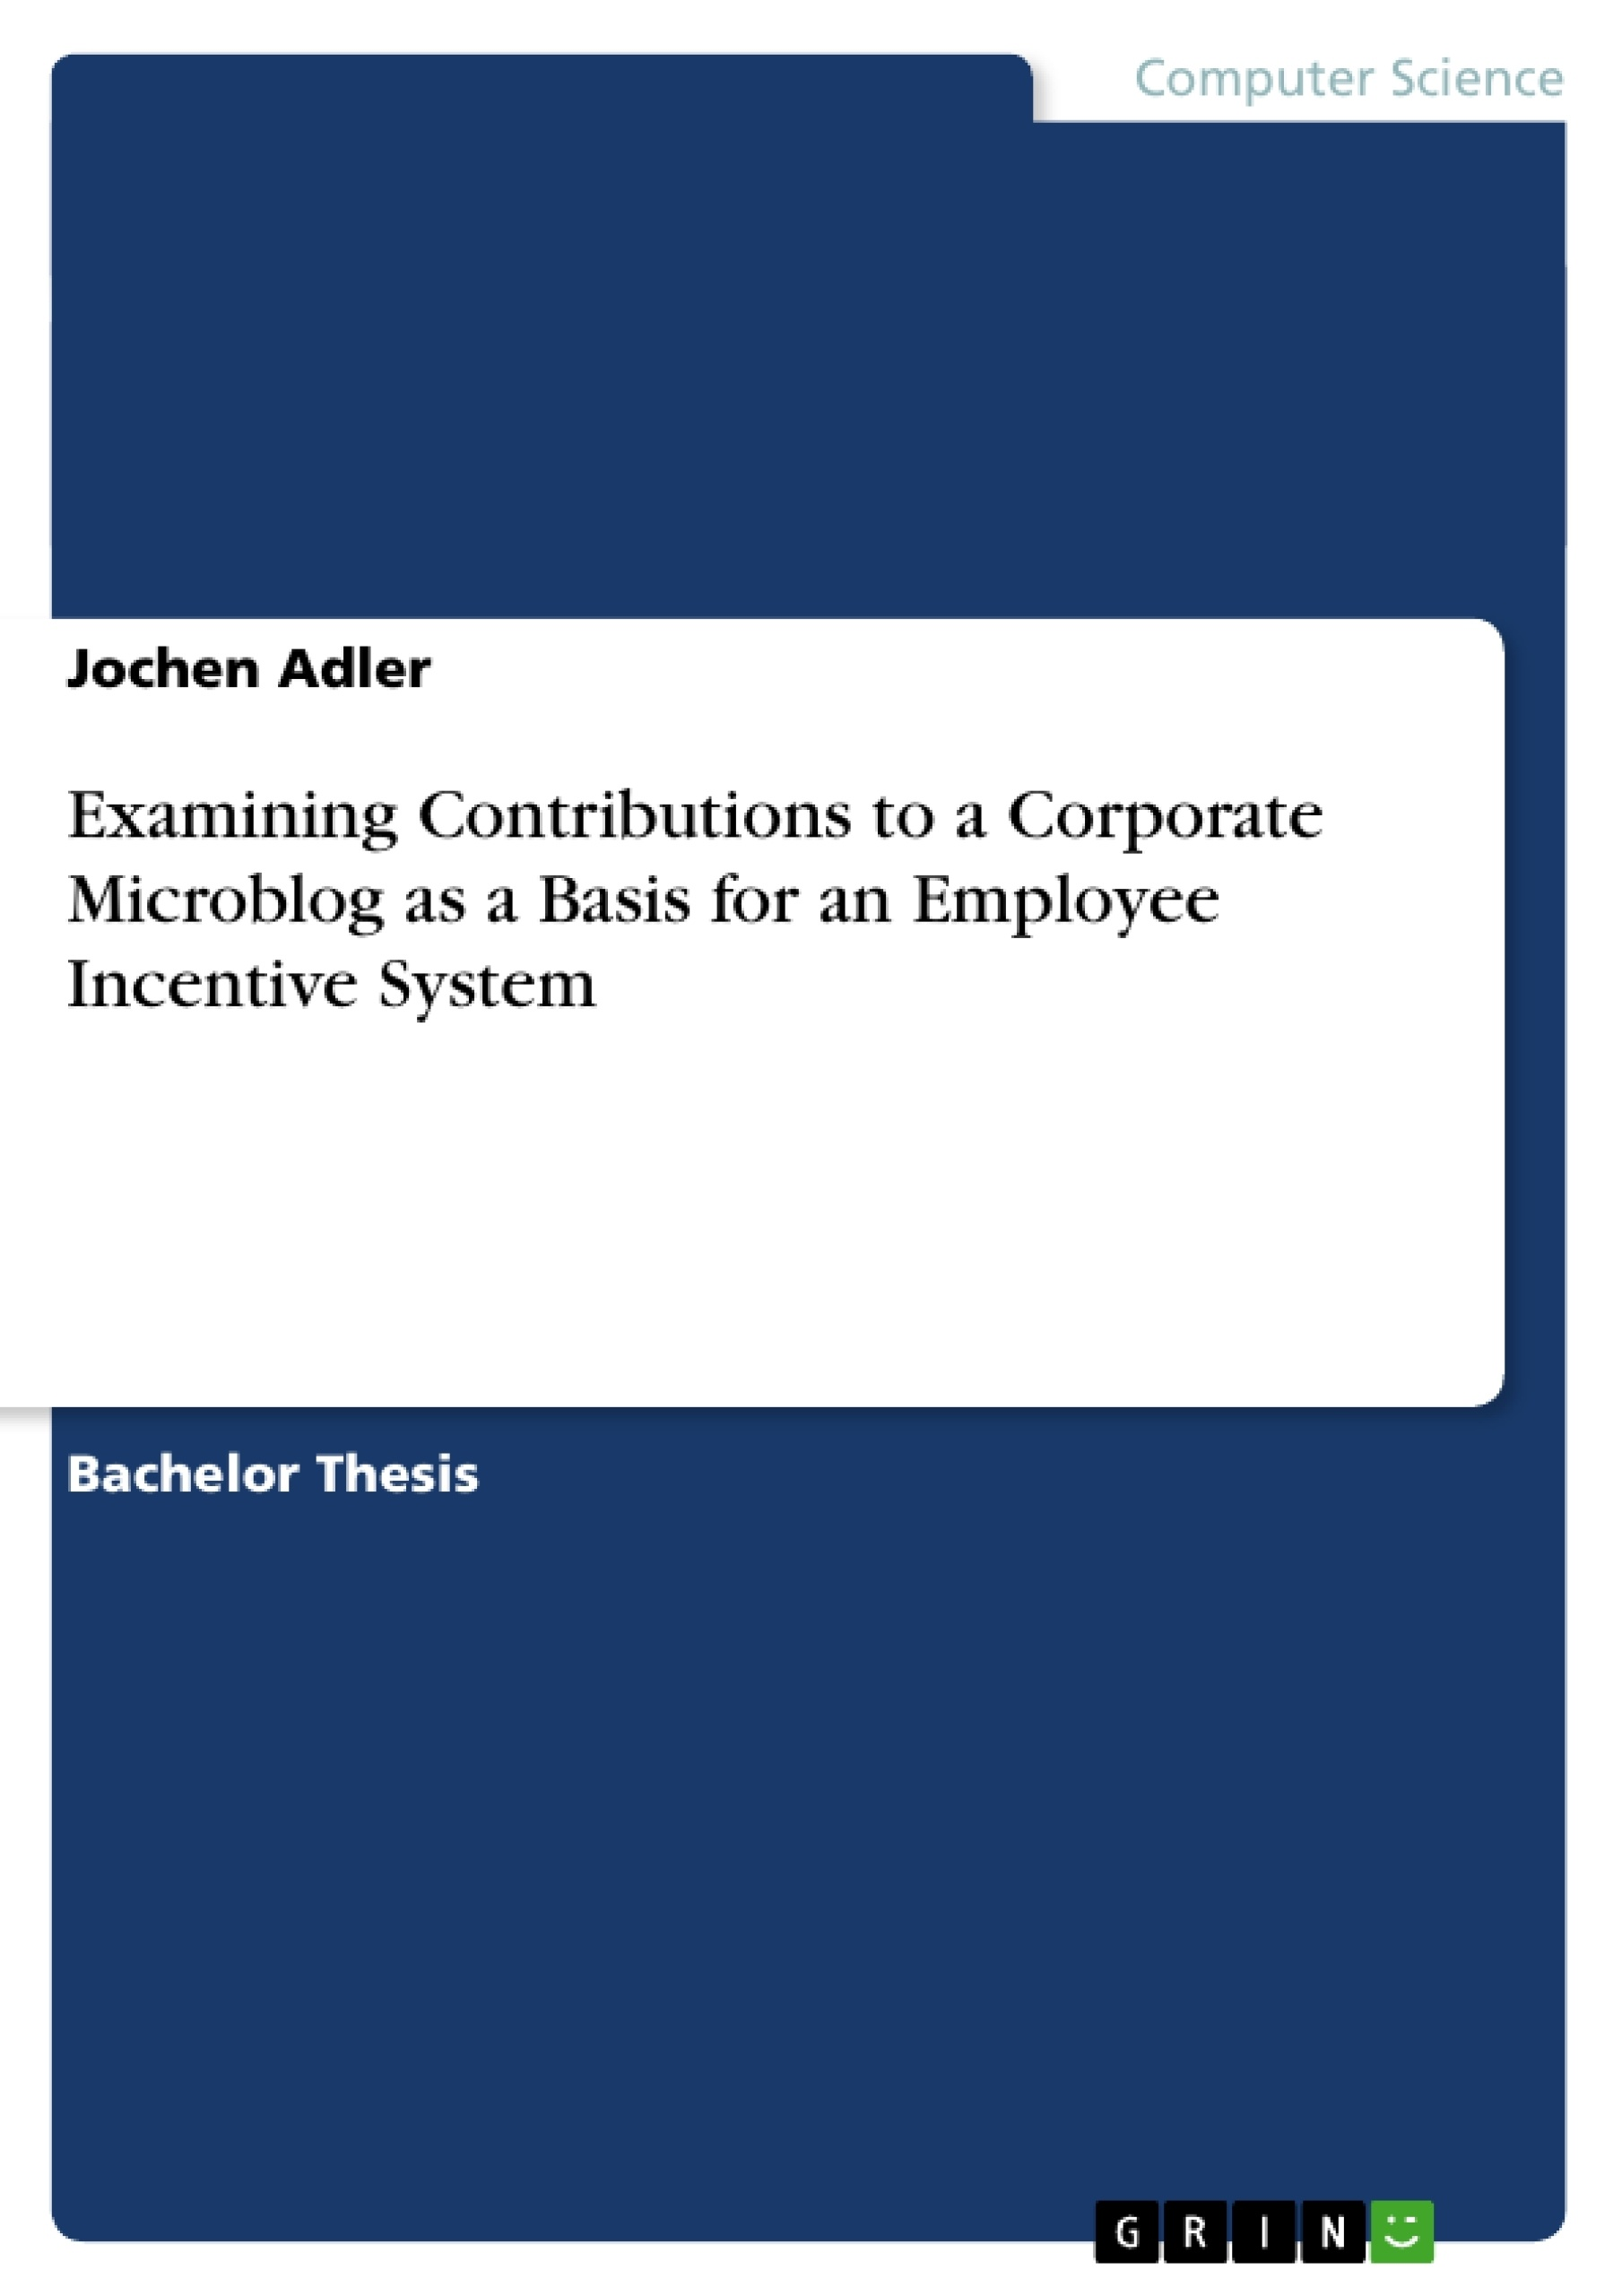 Title: Examining Contributions to a Corporate Microblog as a Basis for an Employee Incentive System